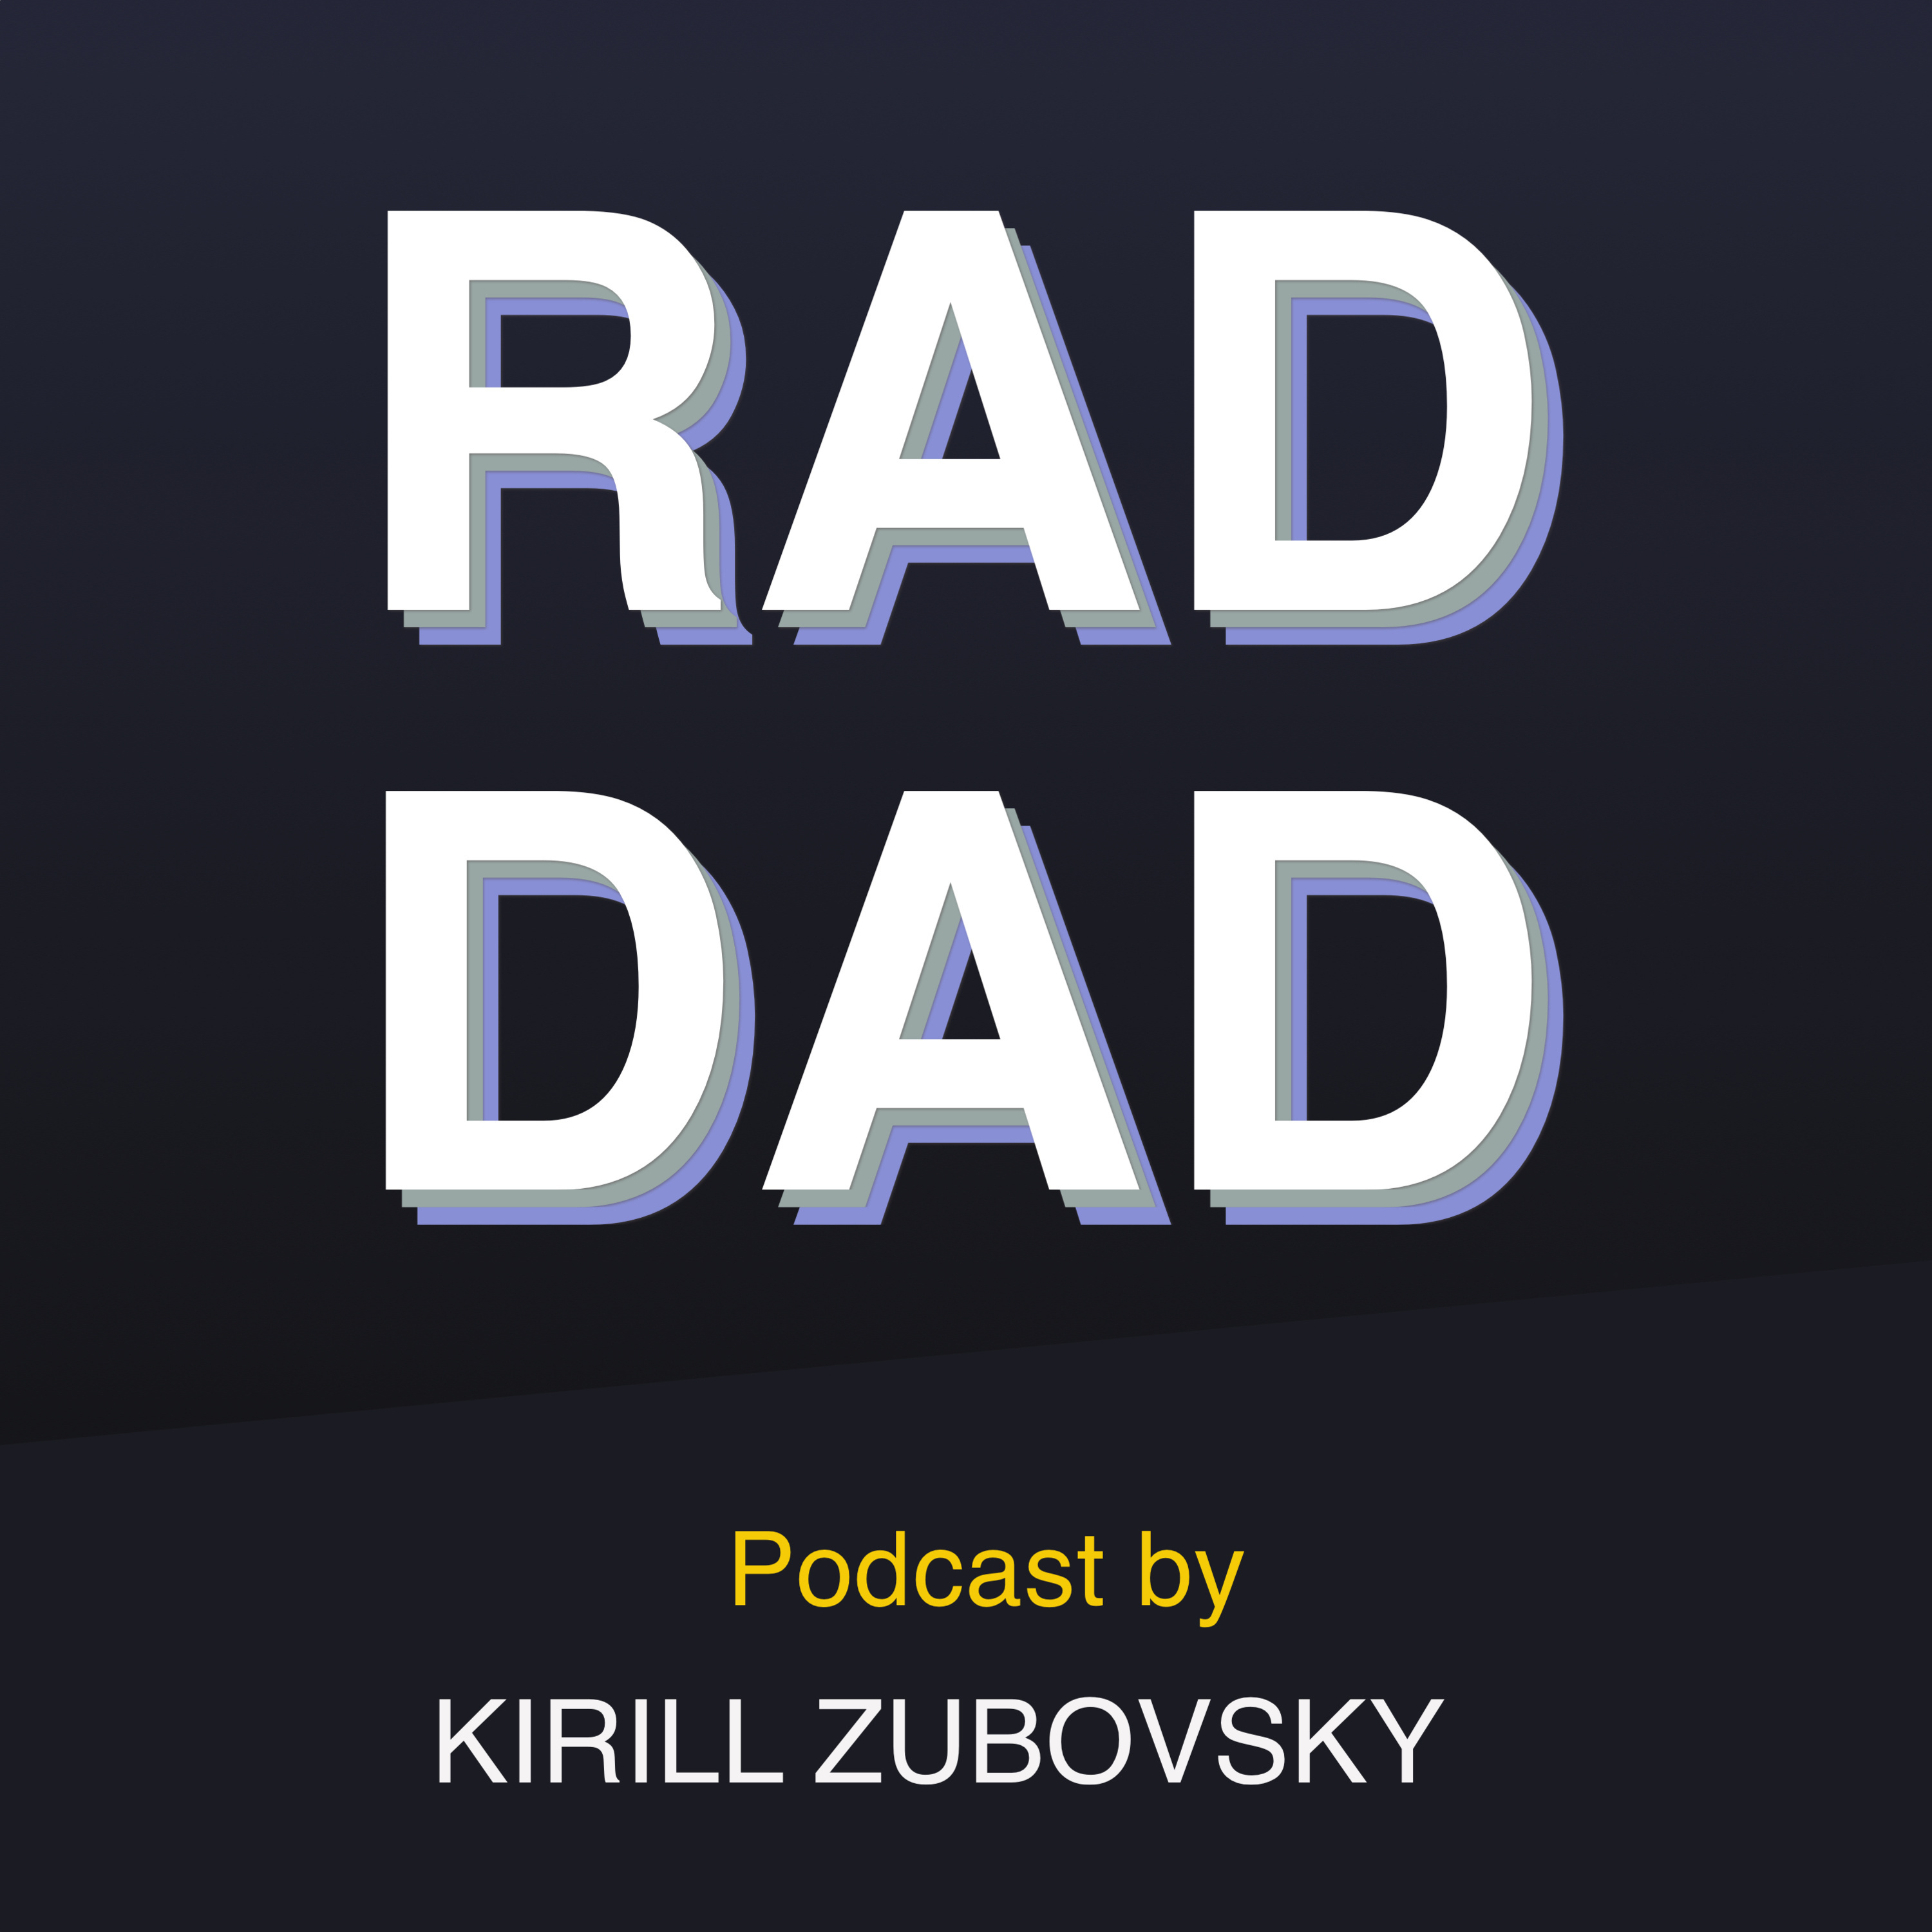 Rad Dad, hosted by Kirill Zubovsky